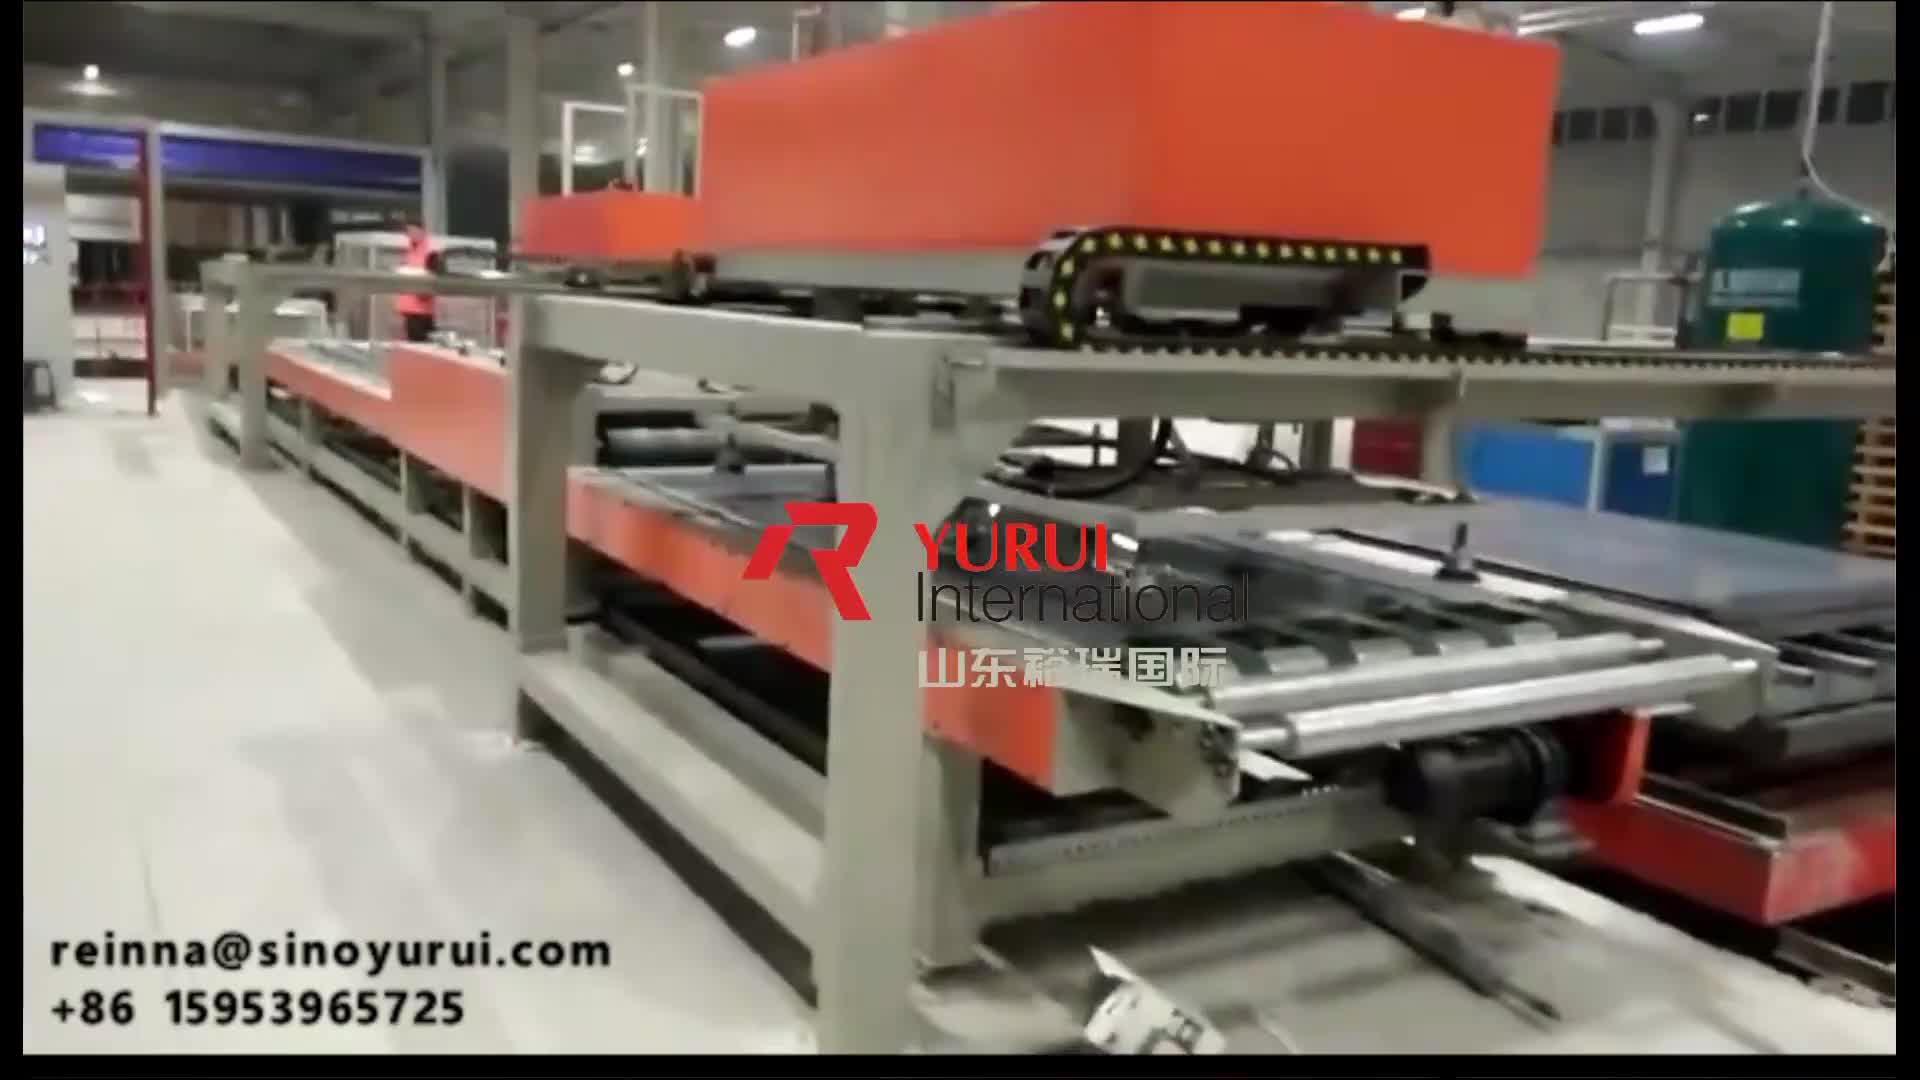 3-25mm 2000pieces/shift magnesium oxide board mgoboard production machine manufacturing process